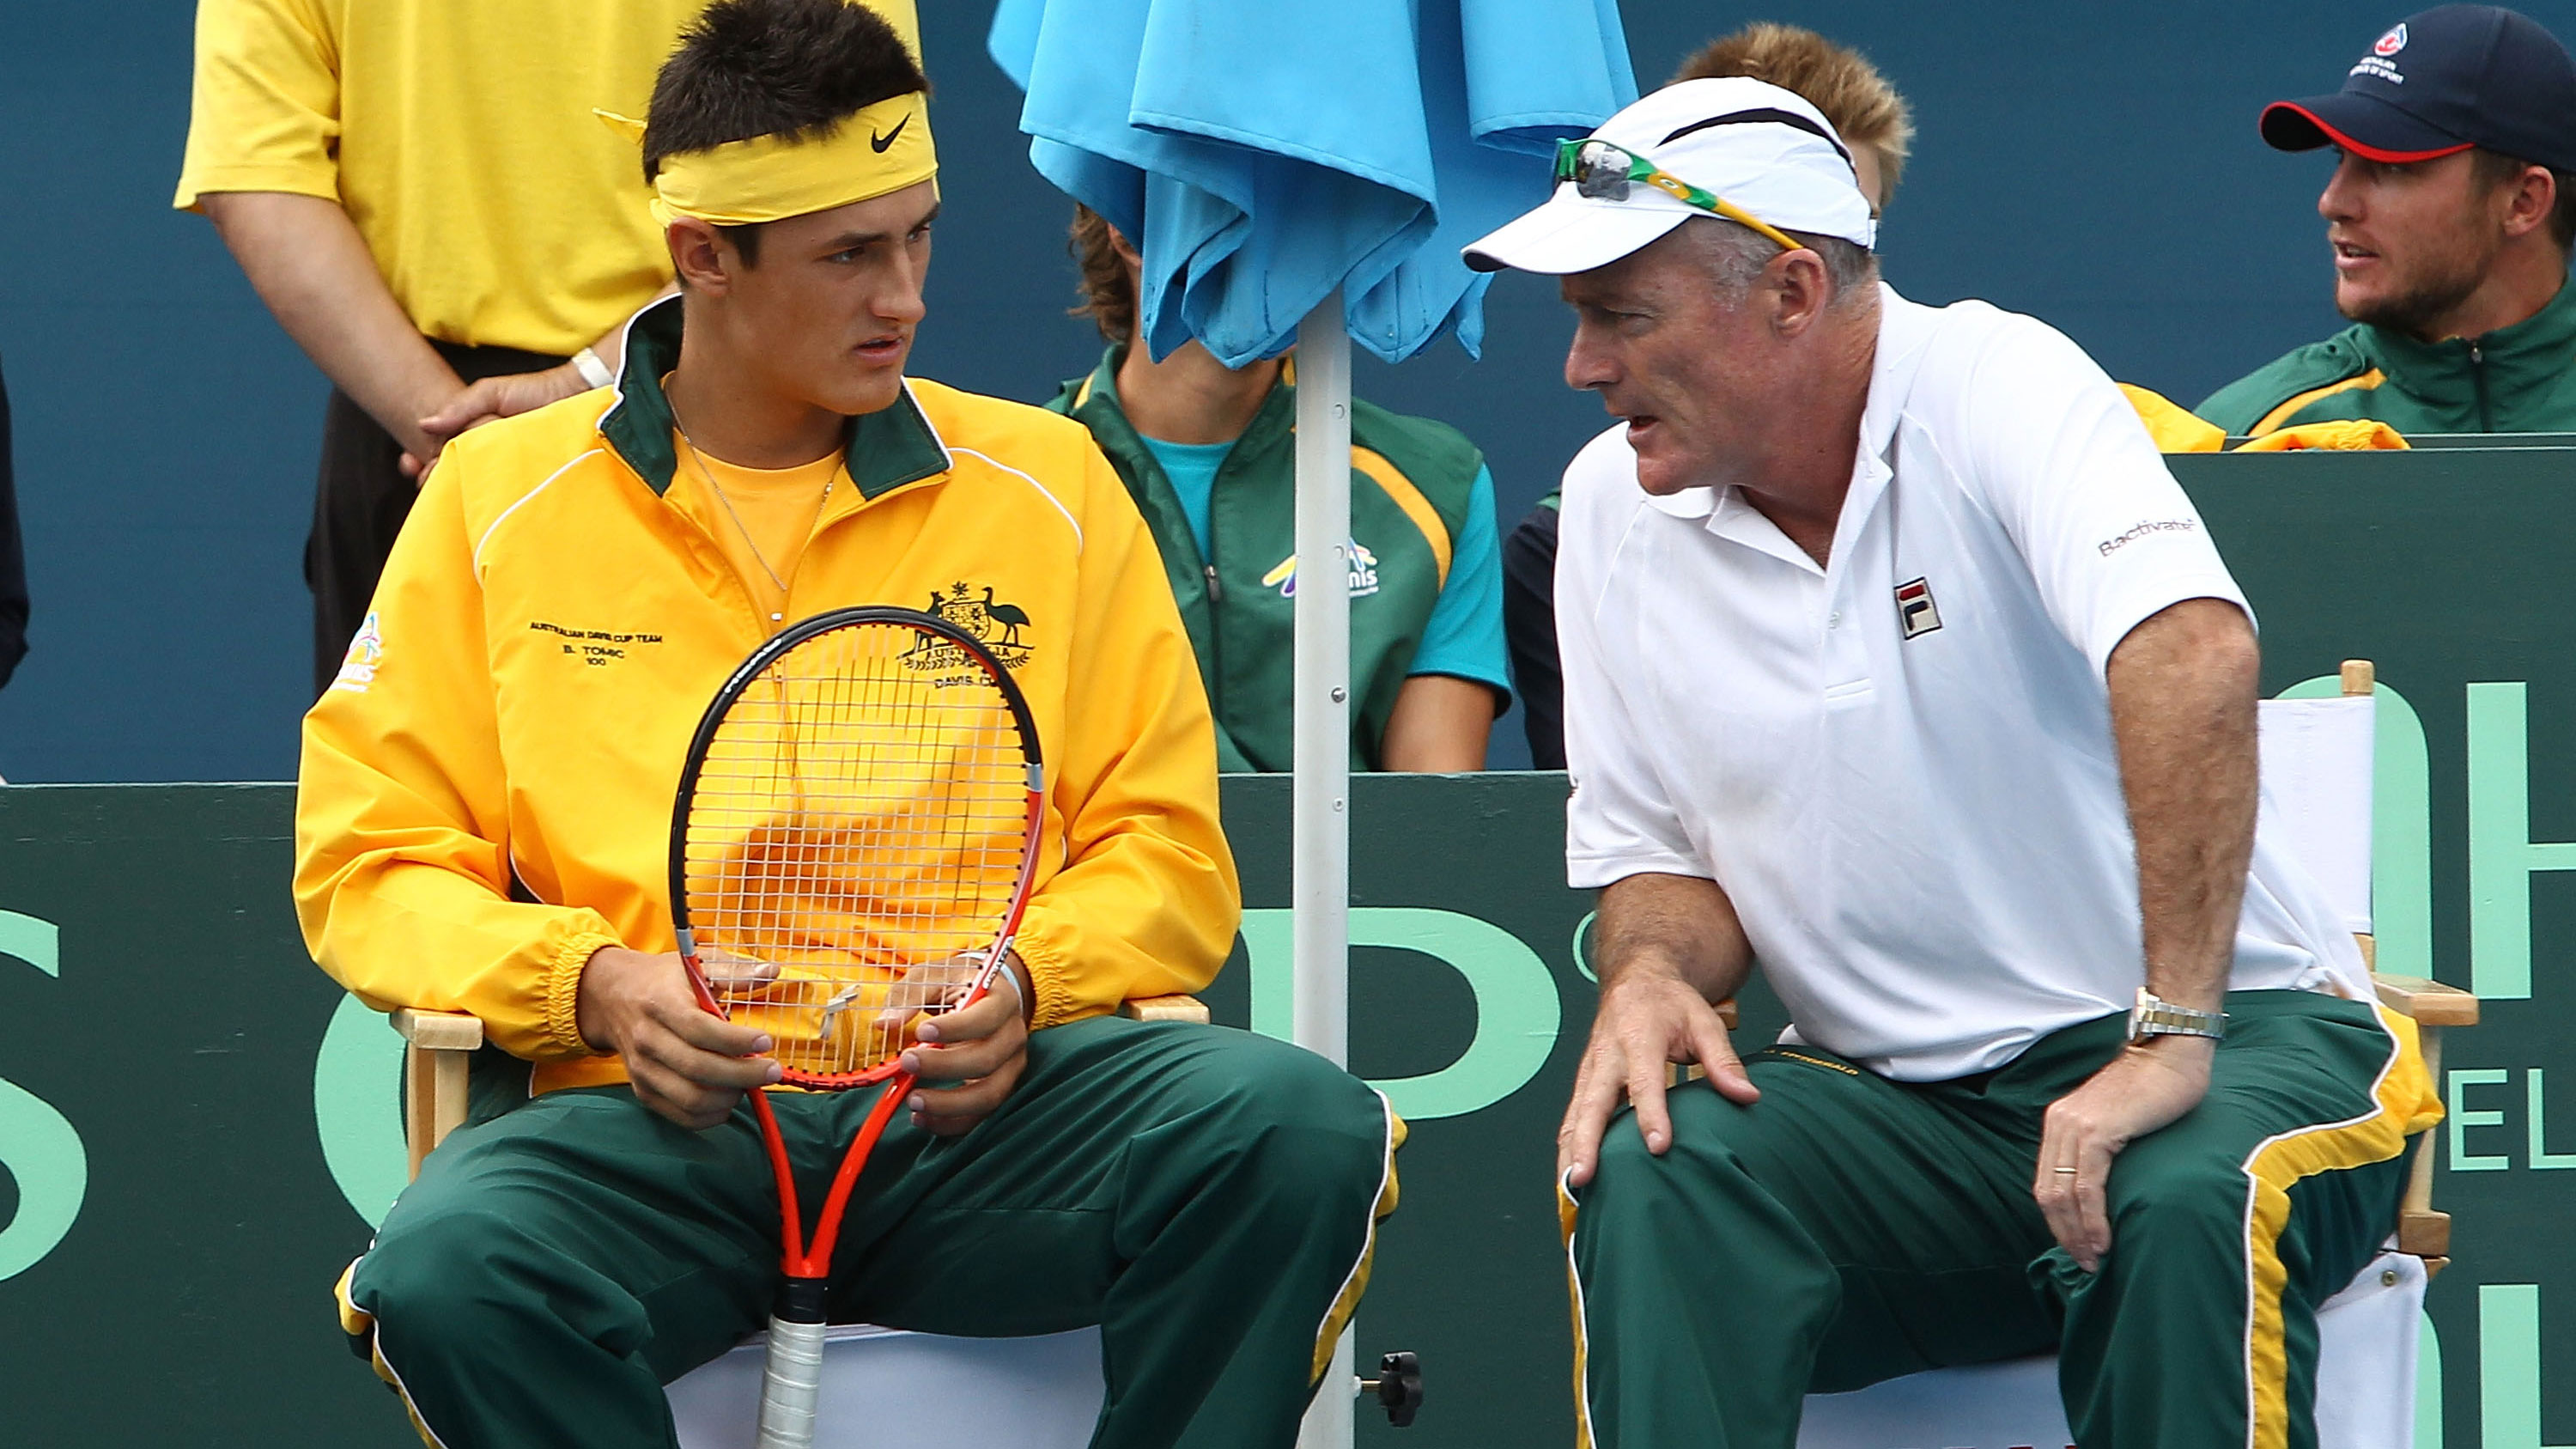 Bernard Tomic was once mentored by John Fitzgerald, then Davis Cup captain.